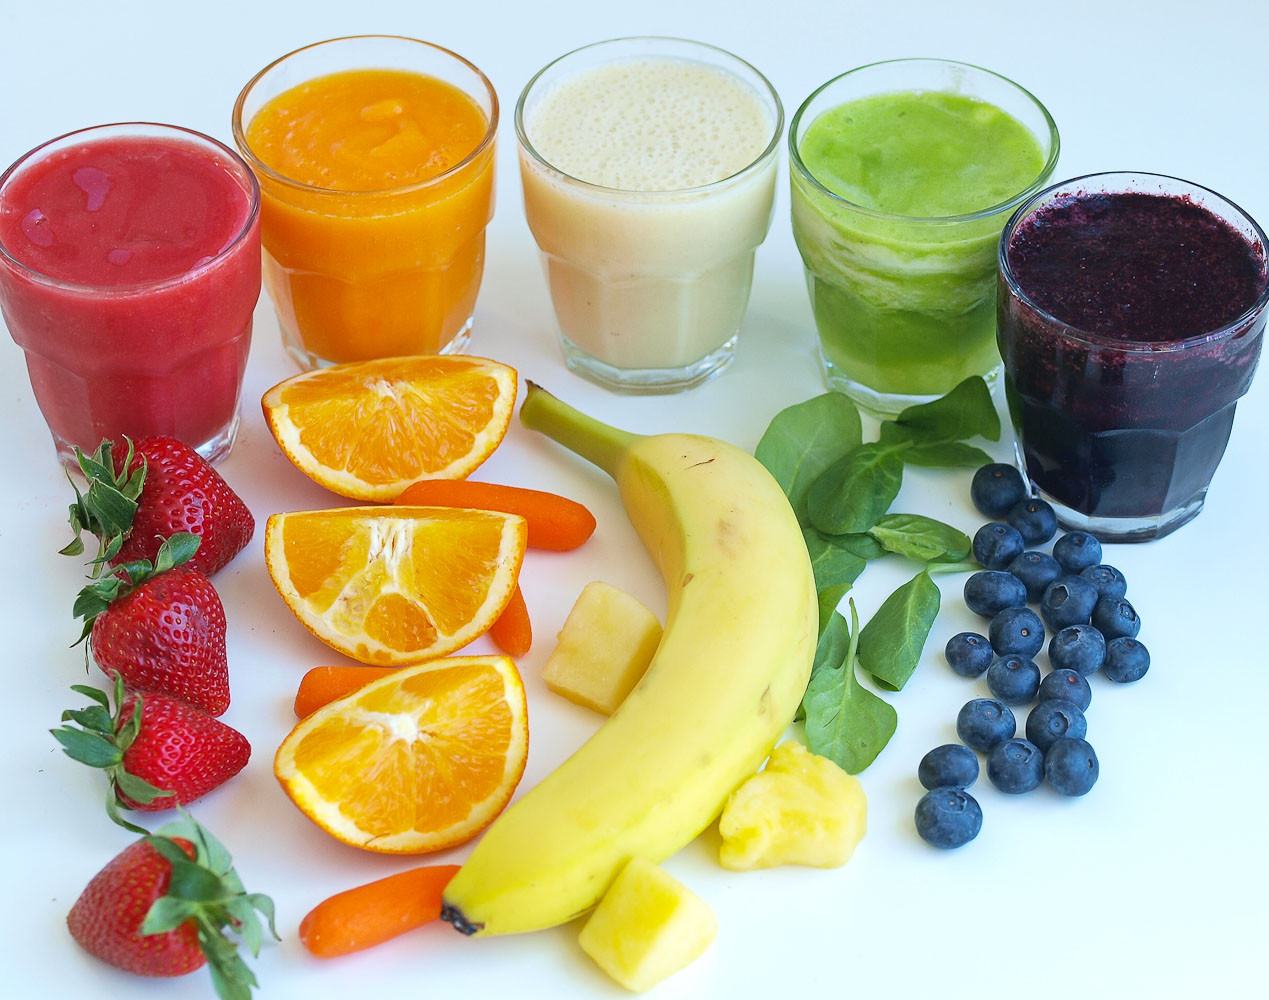 Healthy Tasty Smoothies  Rainbow Smoothies A Tasting Activity for Kids Happy